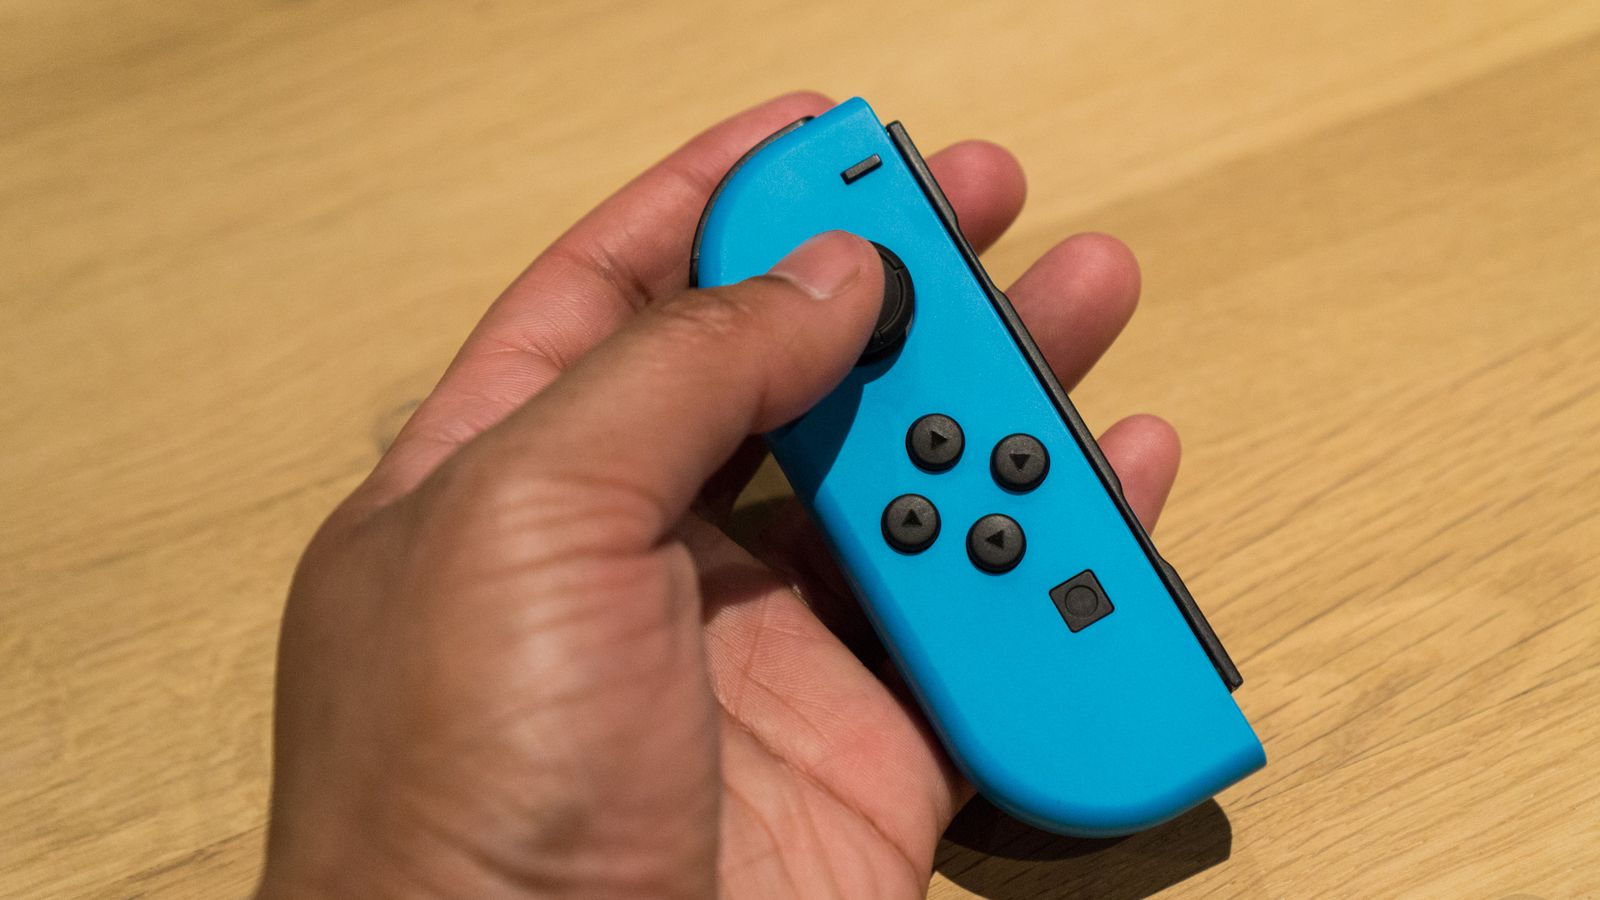 Nintendo Switch's World of Goo shows off system's Wii-style pointer controls